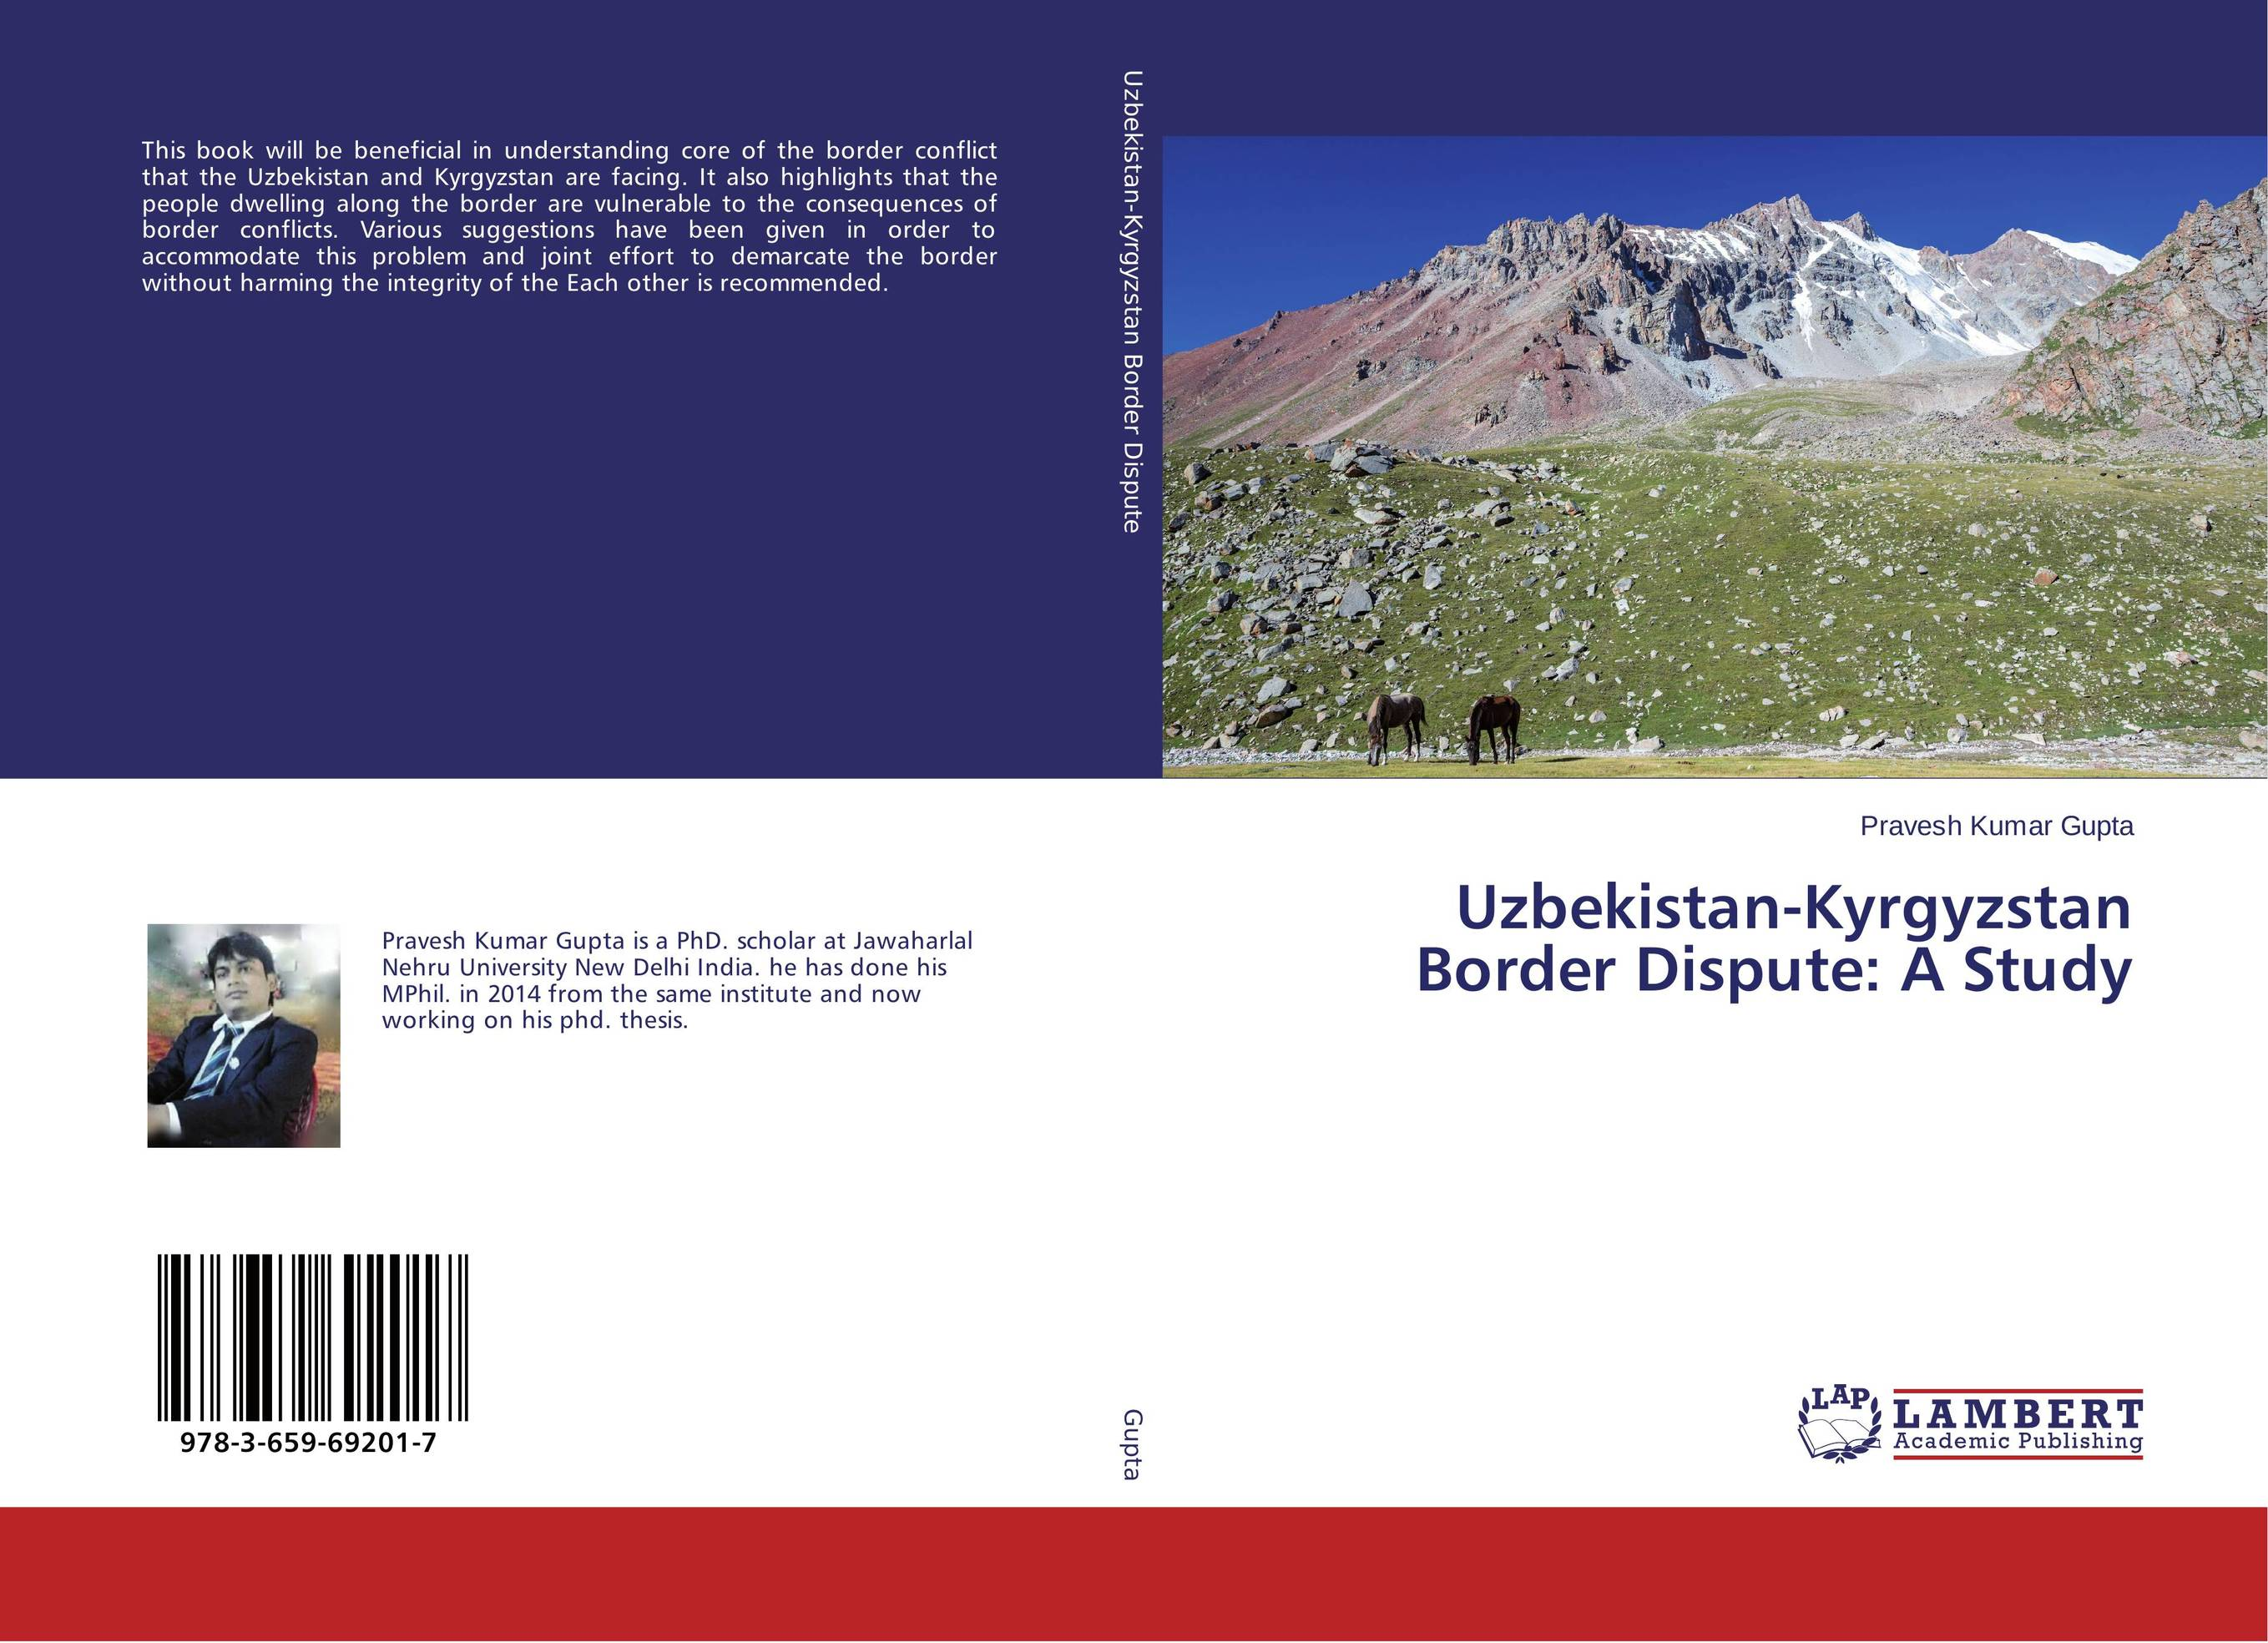 Uzbekistan-Kyrgyzstan Border Dispute: A Study trans border ethnic hegemony and political conflict in africa